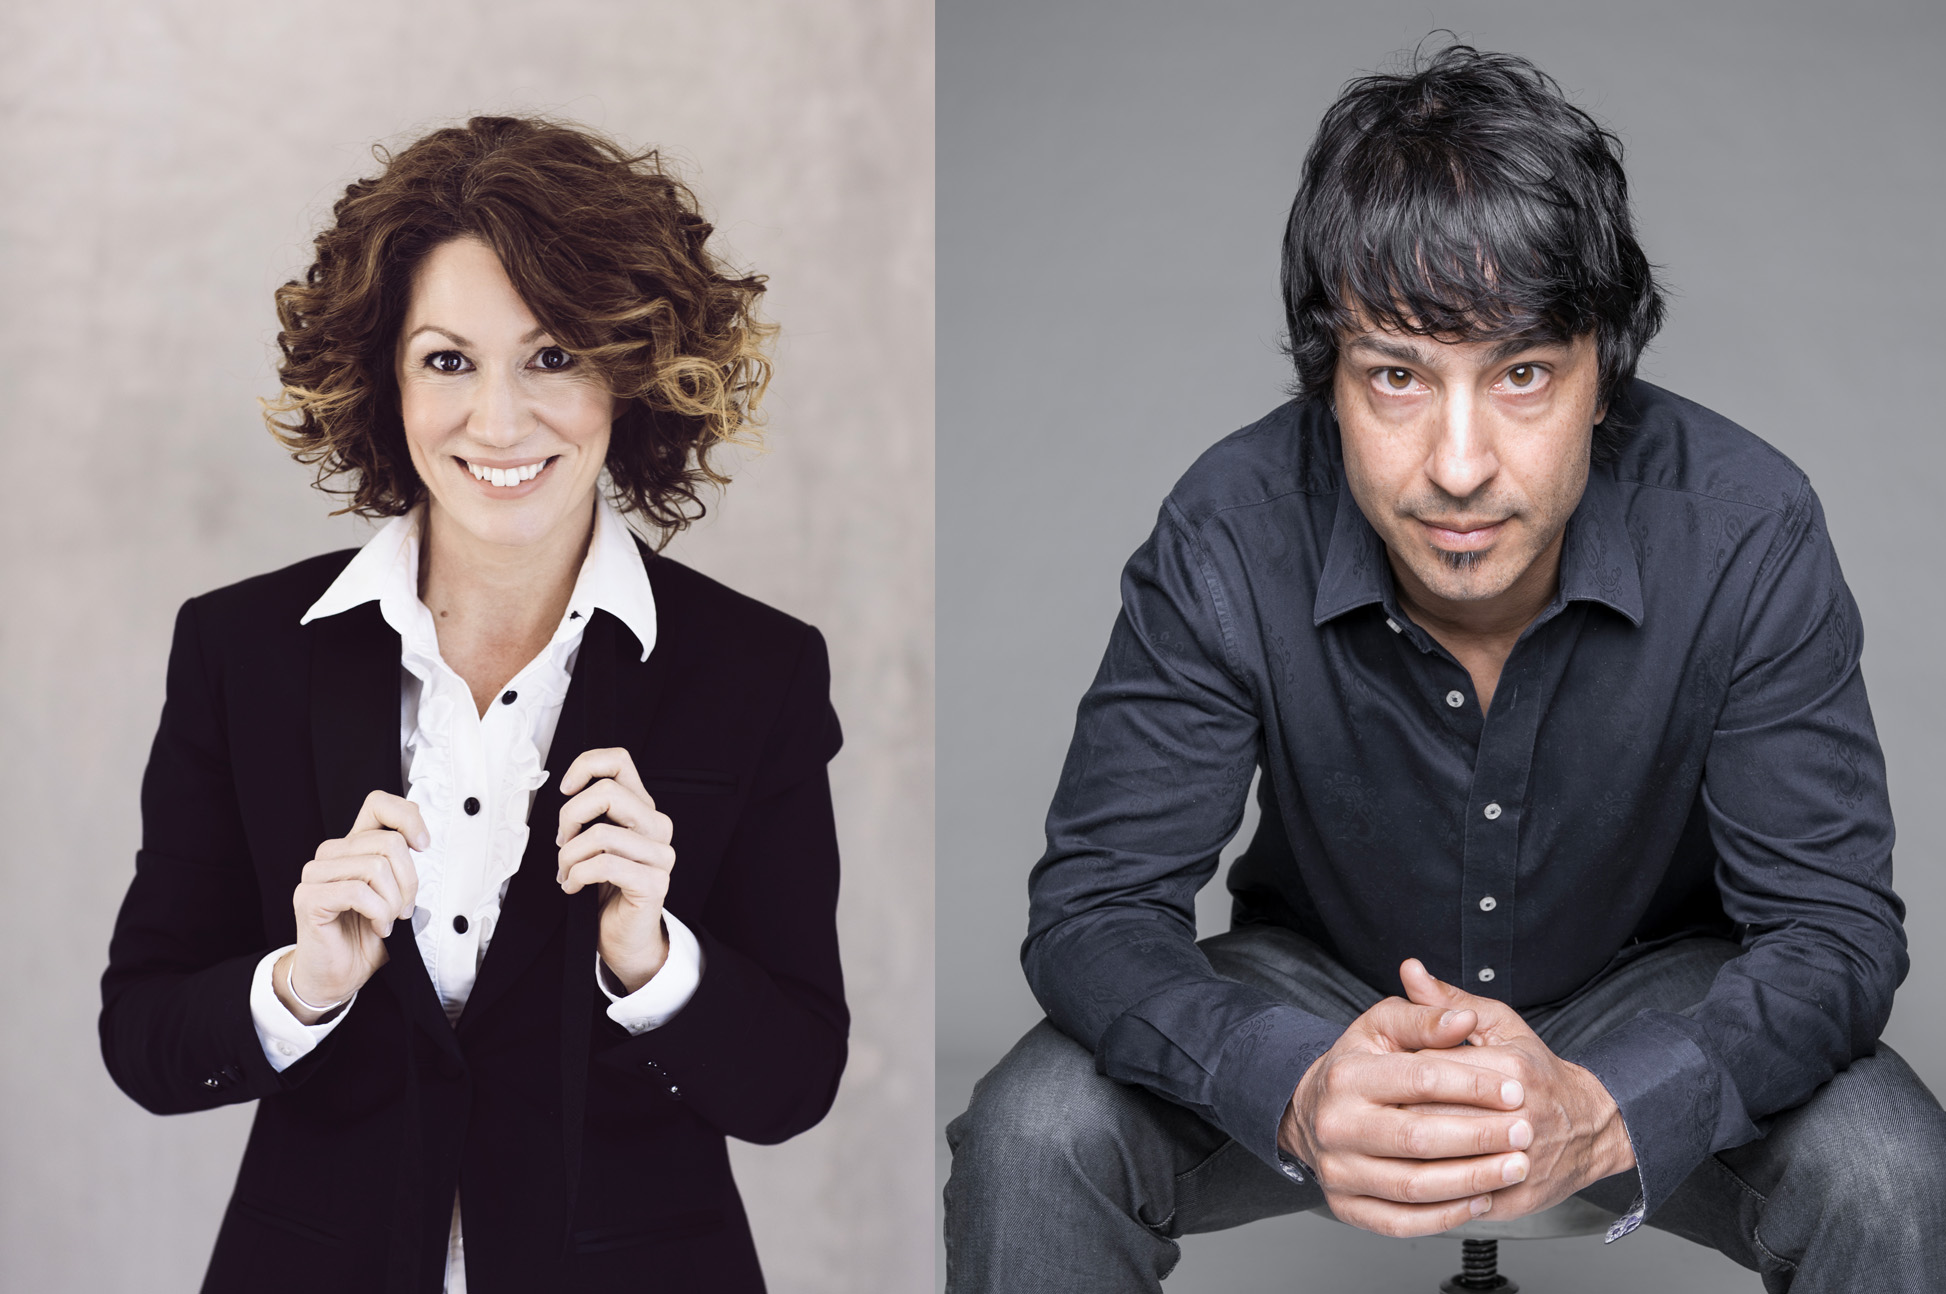 Online Stand-up Series Feat. Kitty Flanagan, Arj Barker & More Kicks Off This Weekend